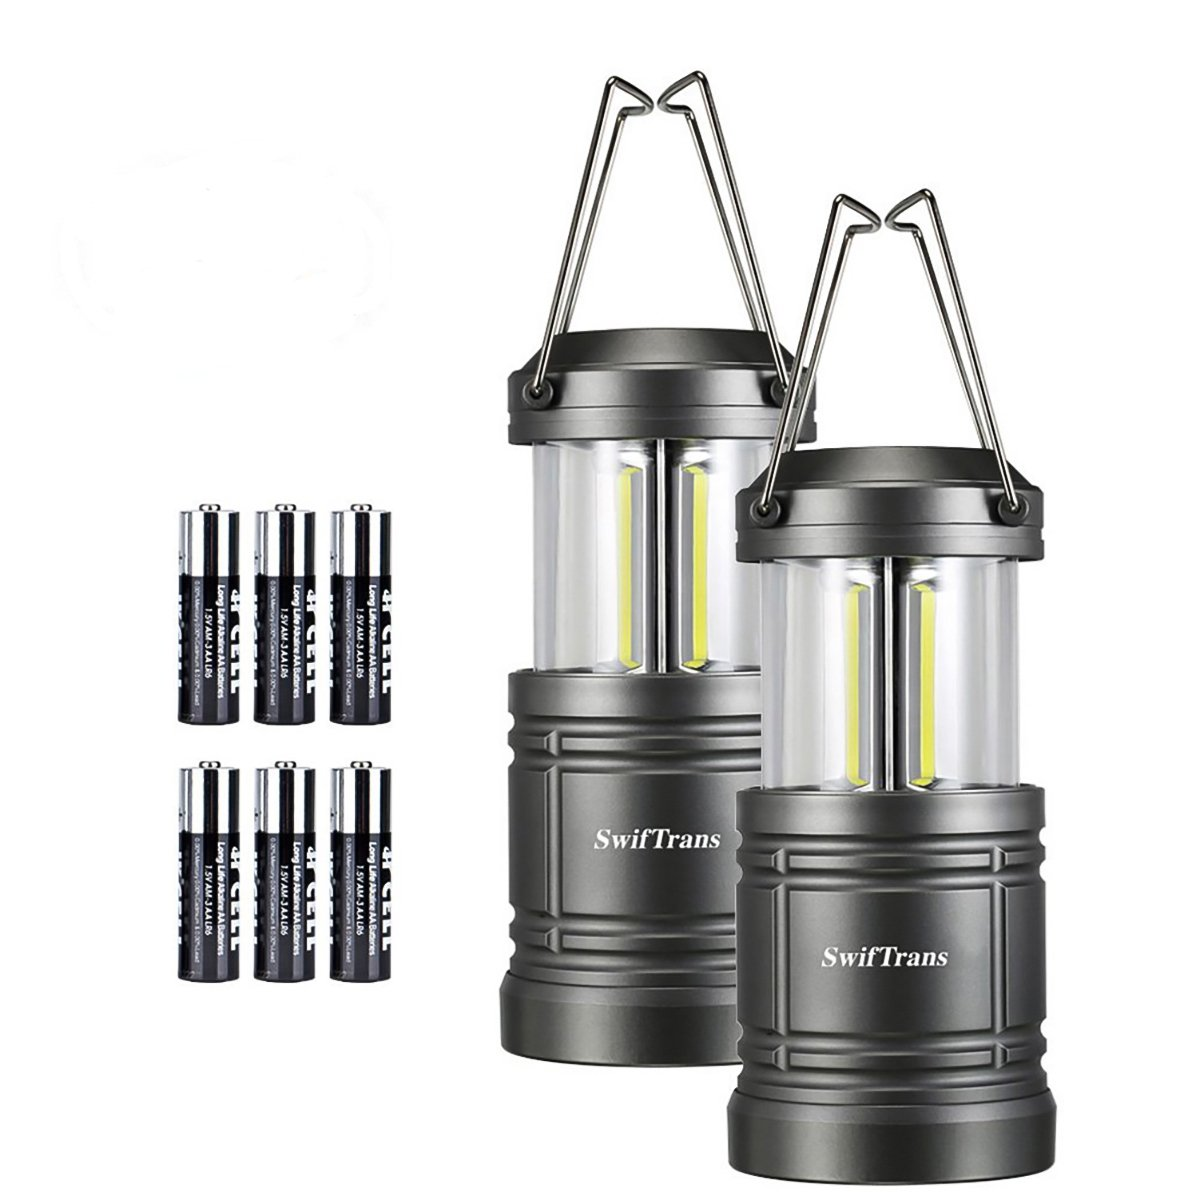 LED Camping Lantern- Swiftrans Lantern Flashlight Ultra Bright Survival Gear for Emergencies, Hurricanes with Magnetic Base(Batteries Included Collapsible) (2 Pack)